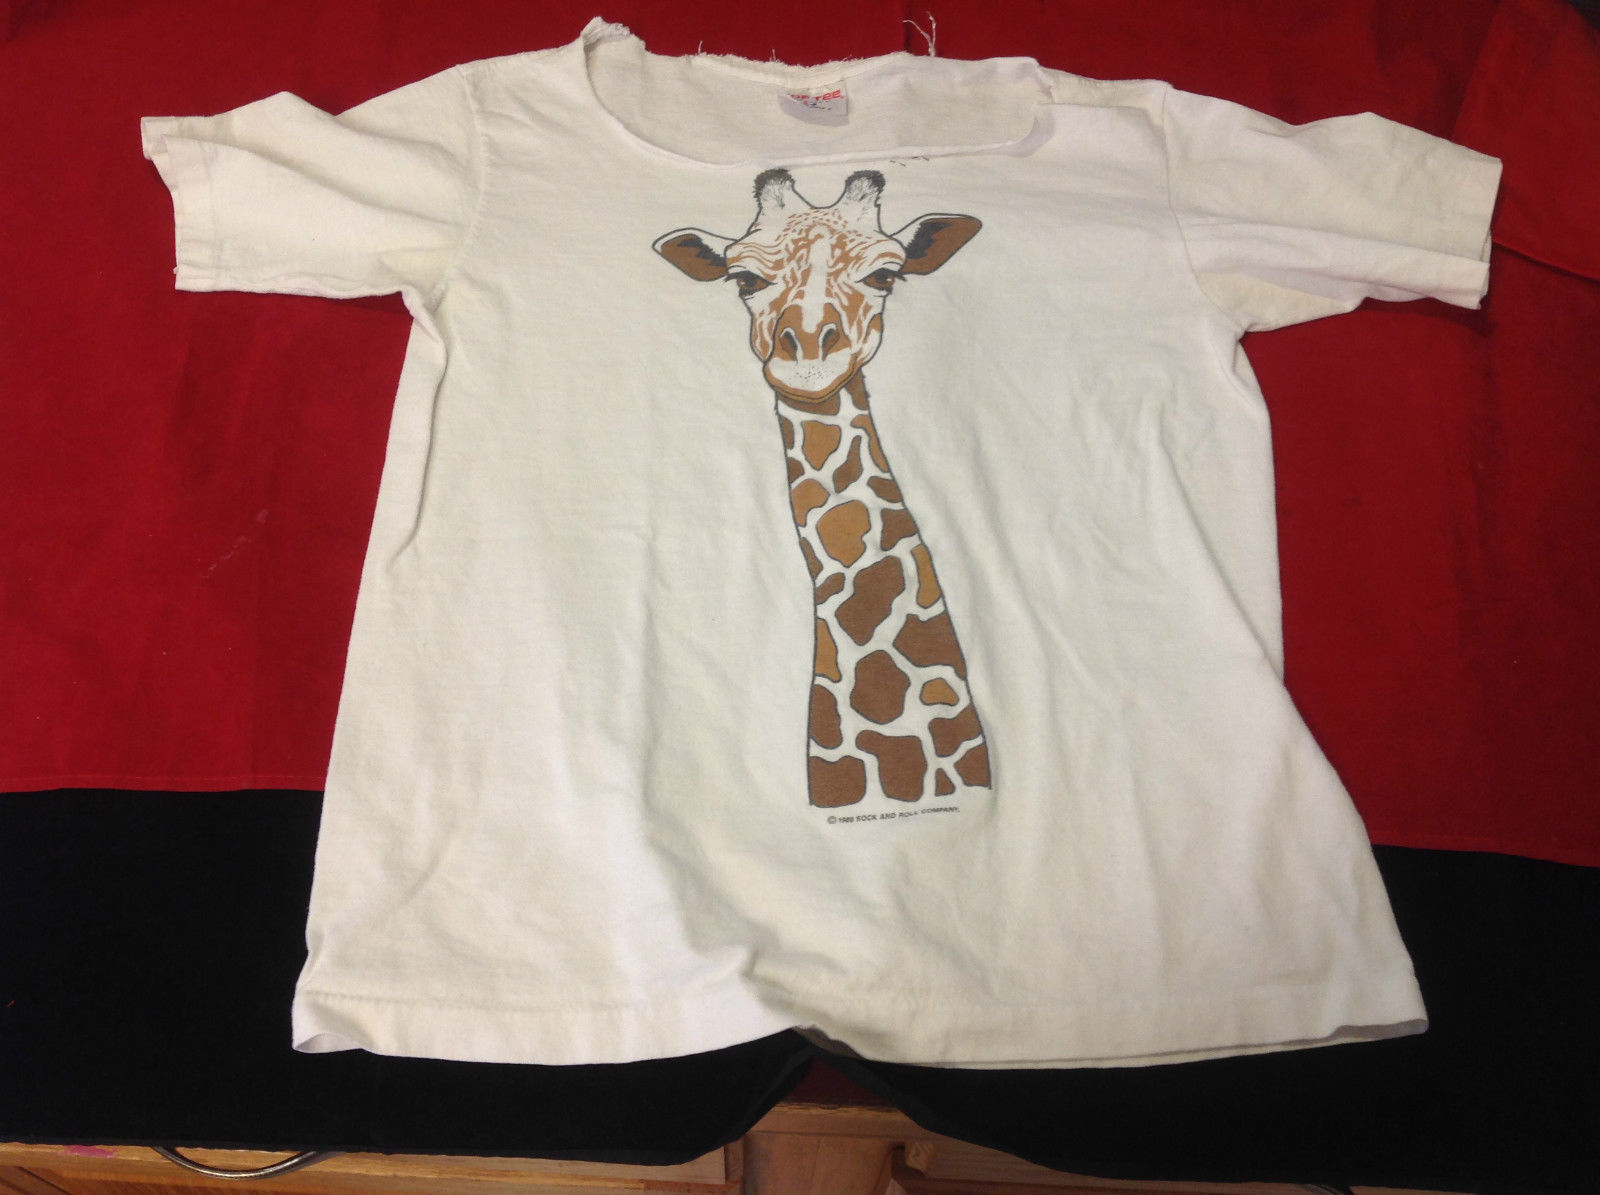 Giraffe Sof tee short sleeve size small t shirt